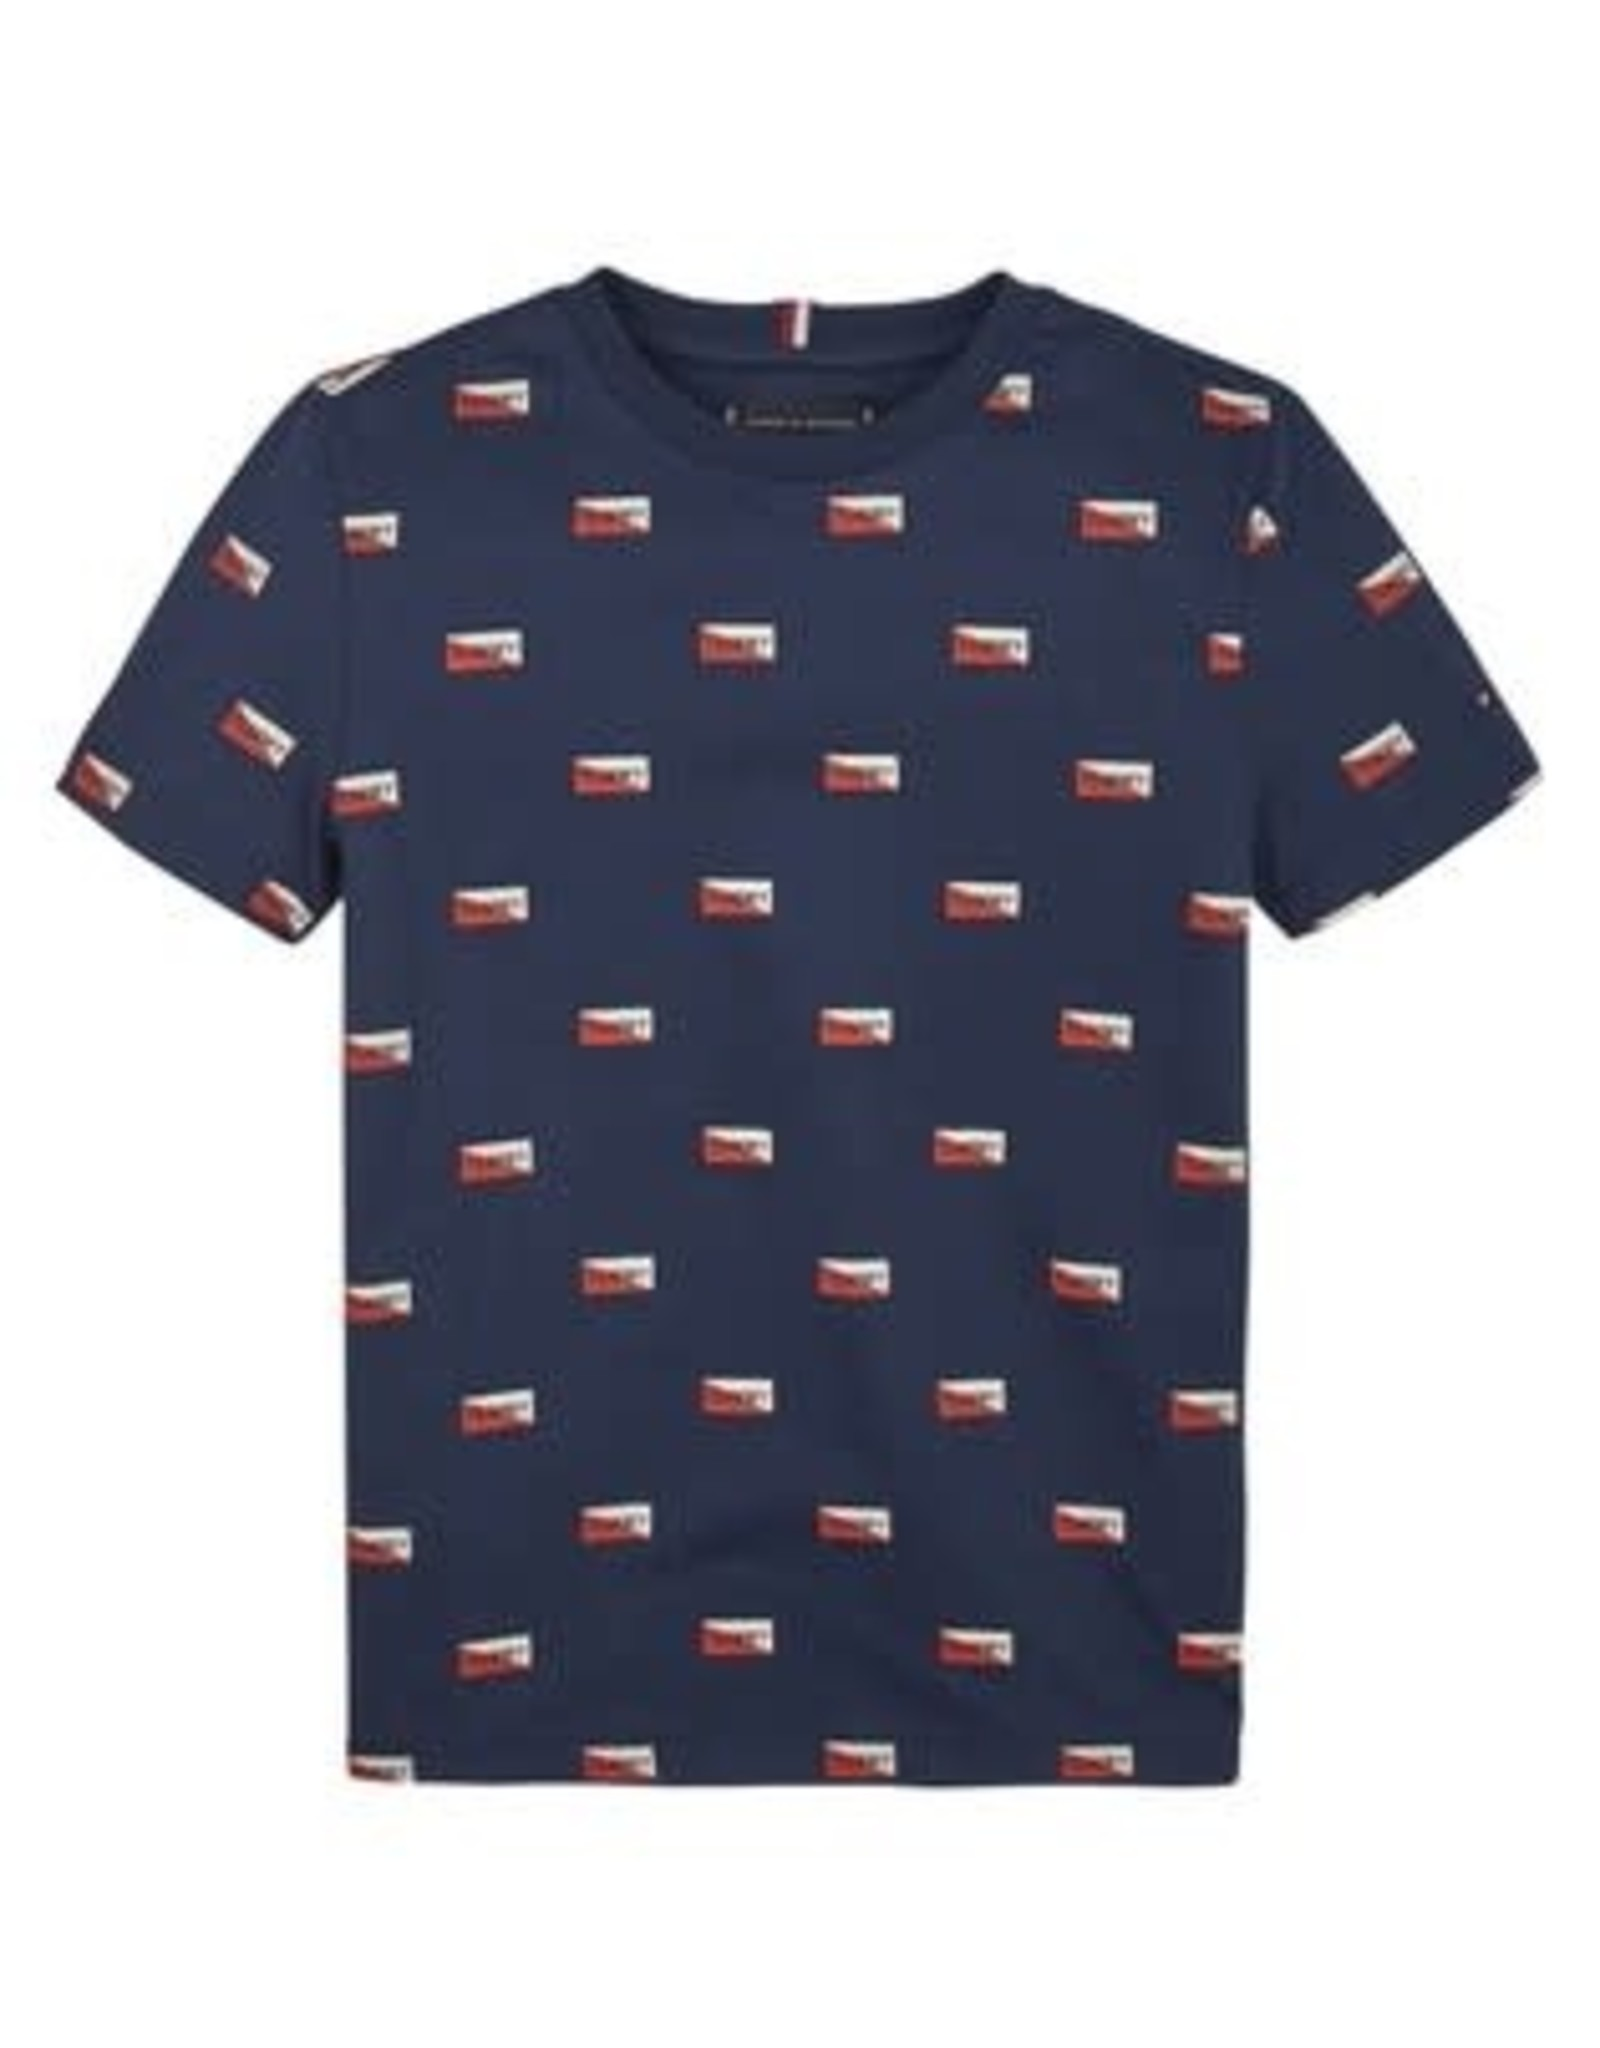 Tommy Hilfiger Printed Shields Tee S/S